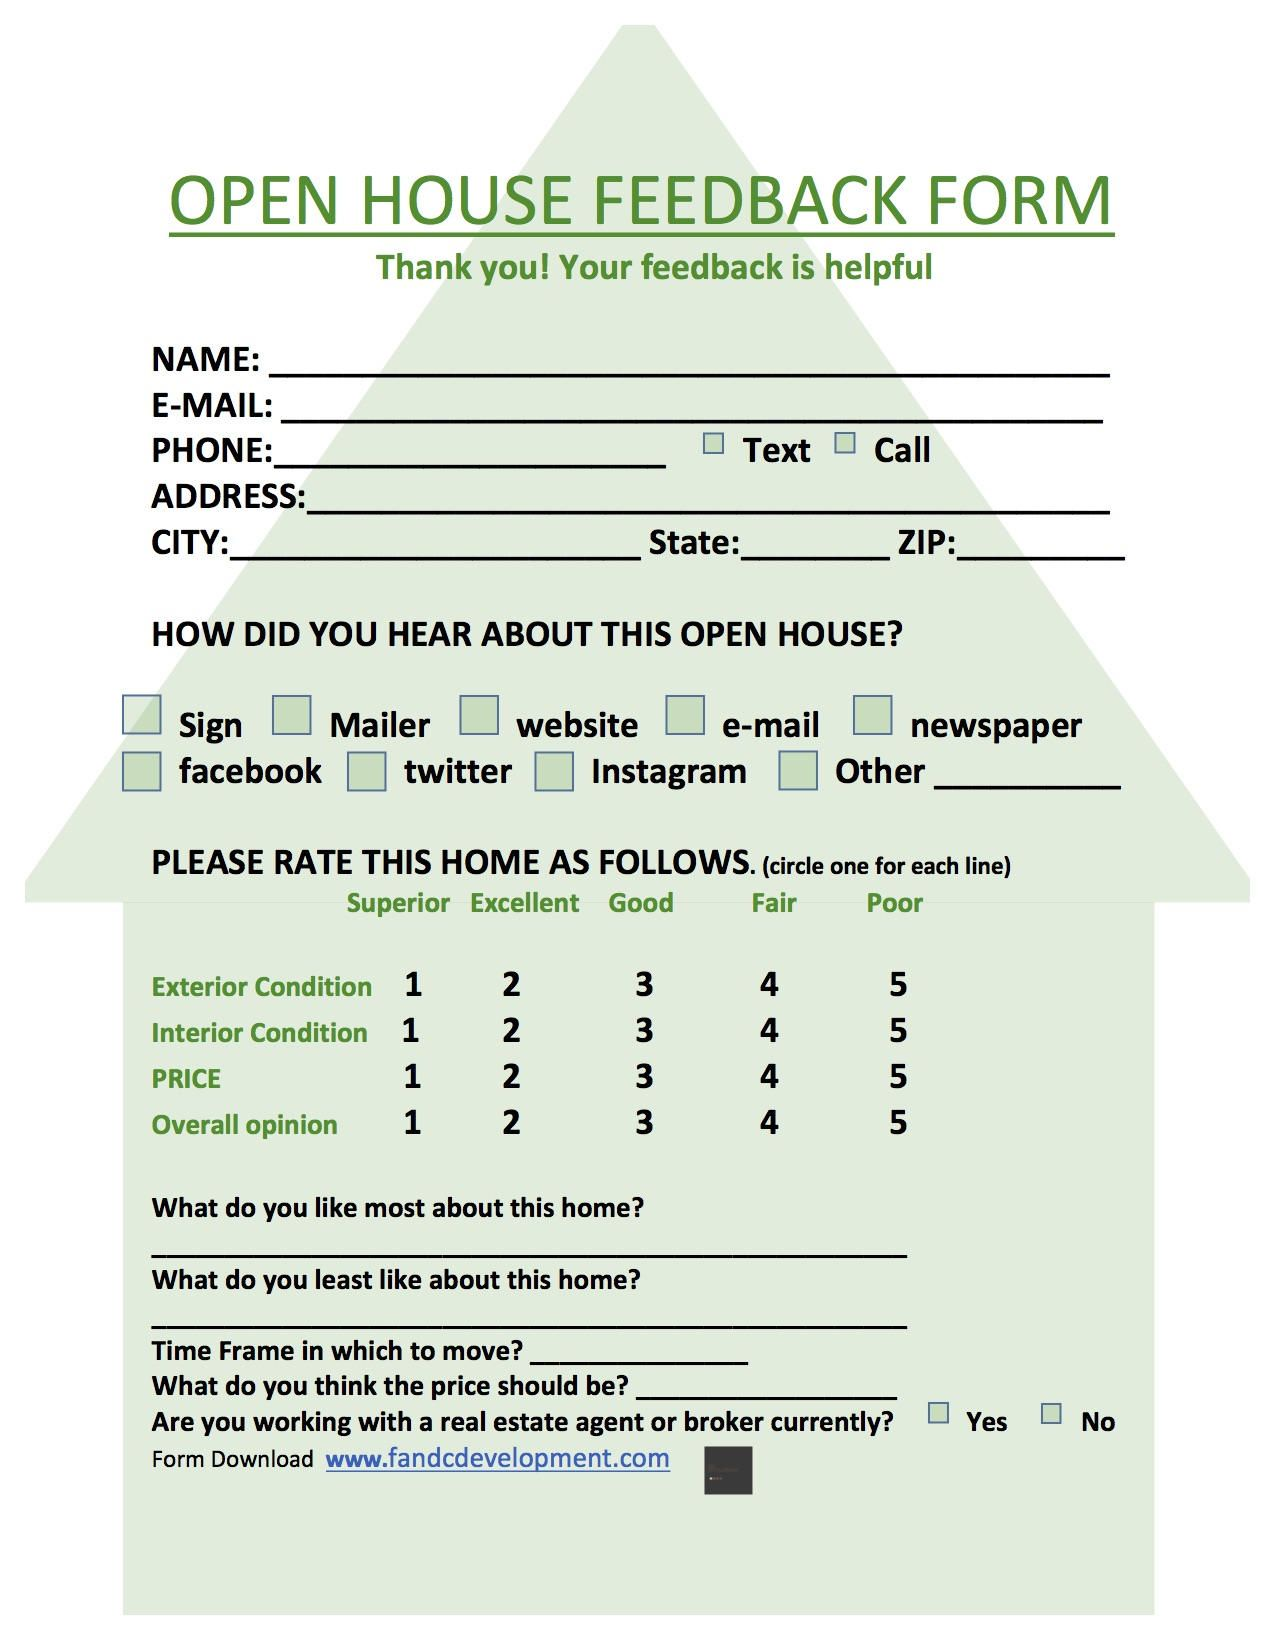 Real Estate Forms Open House Feedback Form Open House